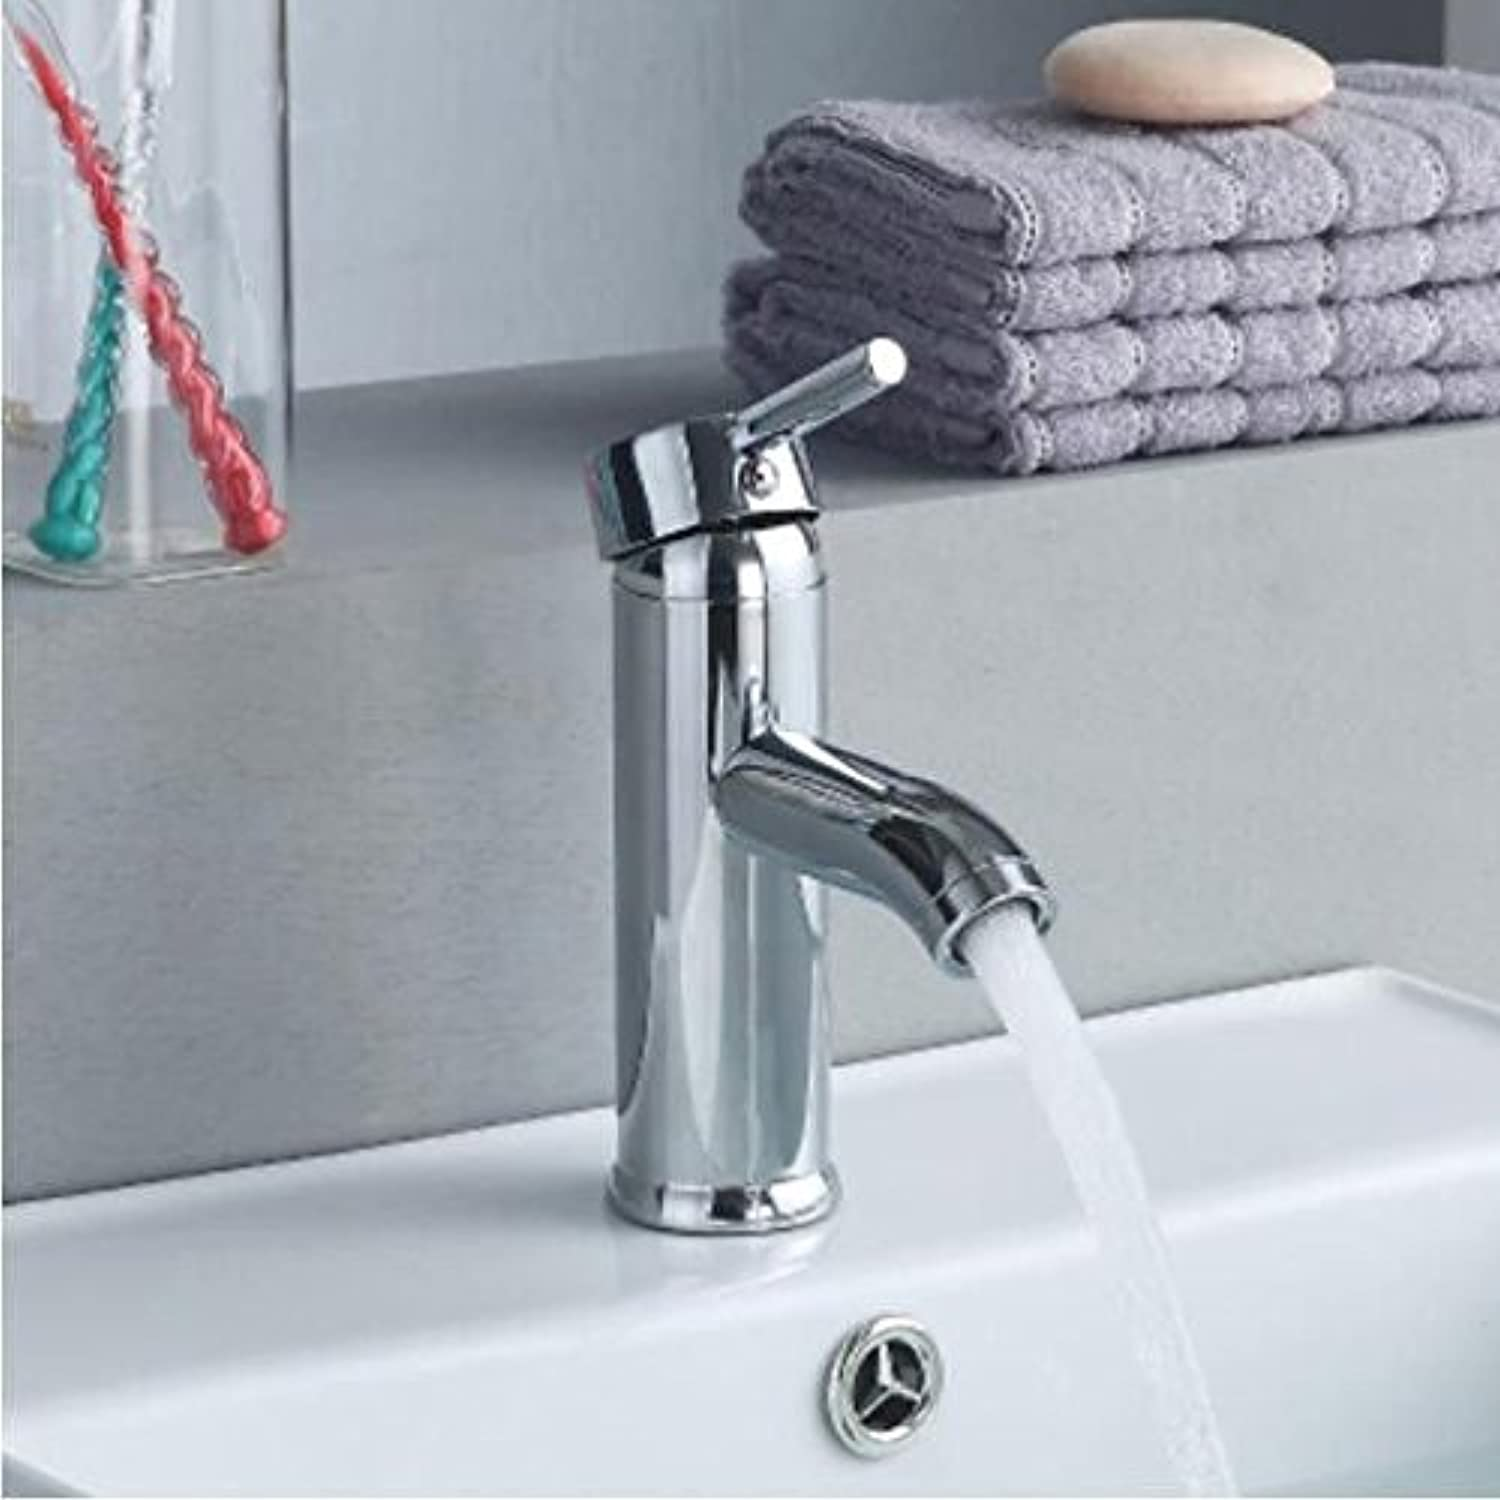 Decorry All Copper Single Hole Basin Basin Handbasin Faucet Bathroom Cabinet Cold Hot Faucet Washbasin Basin Mixing Valve Ceramic Disc Spool,B